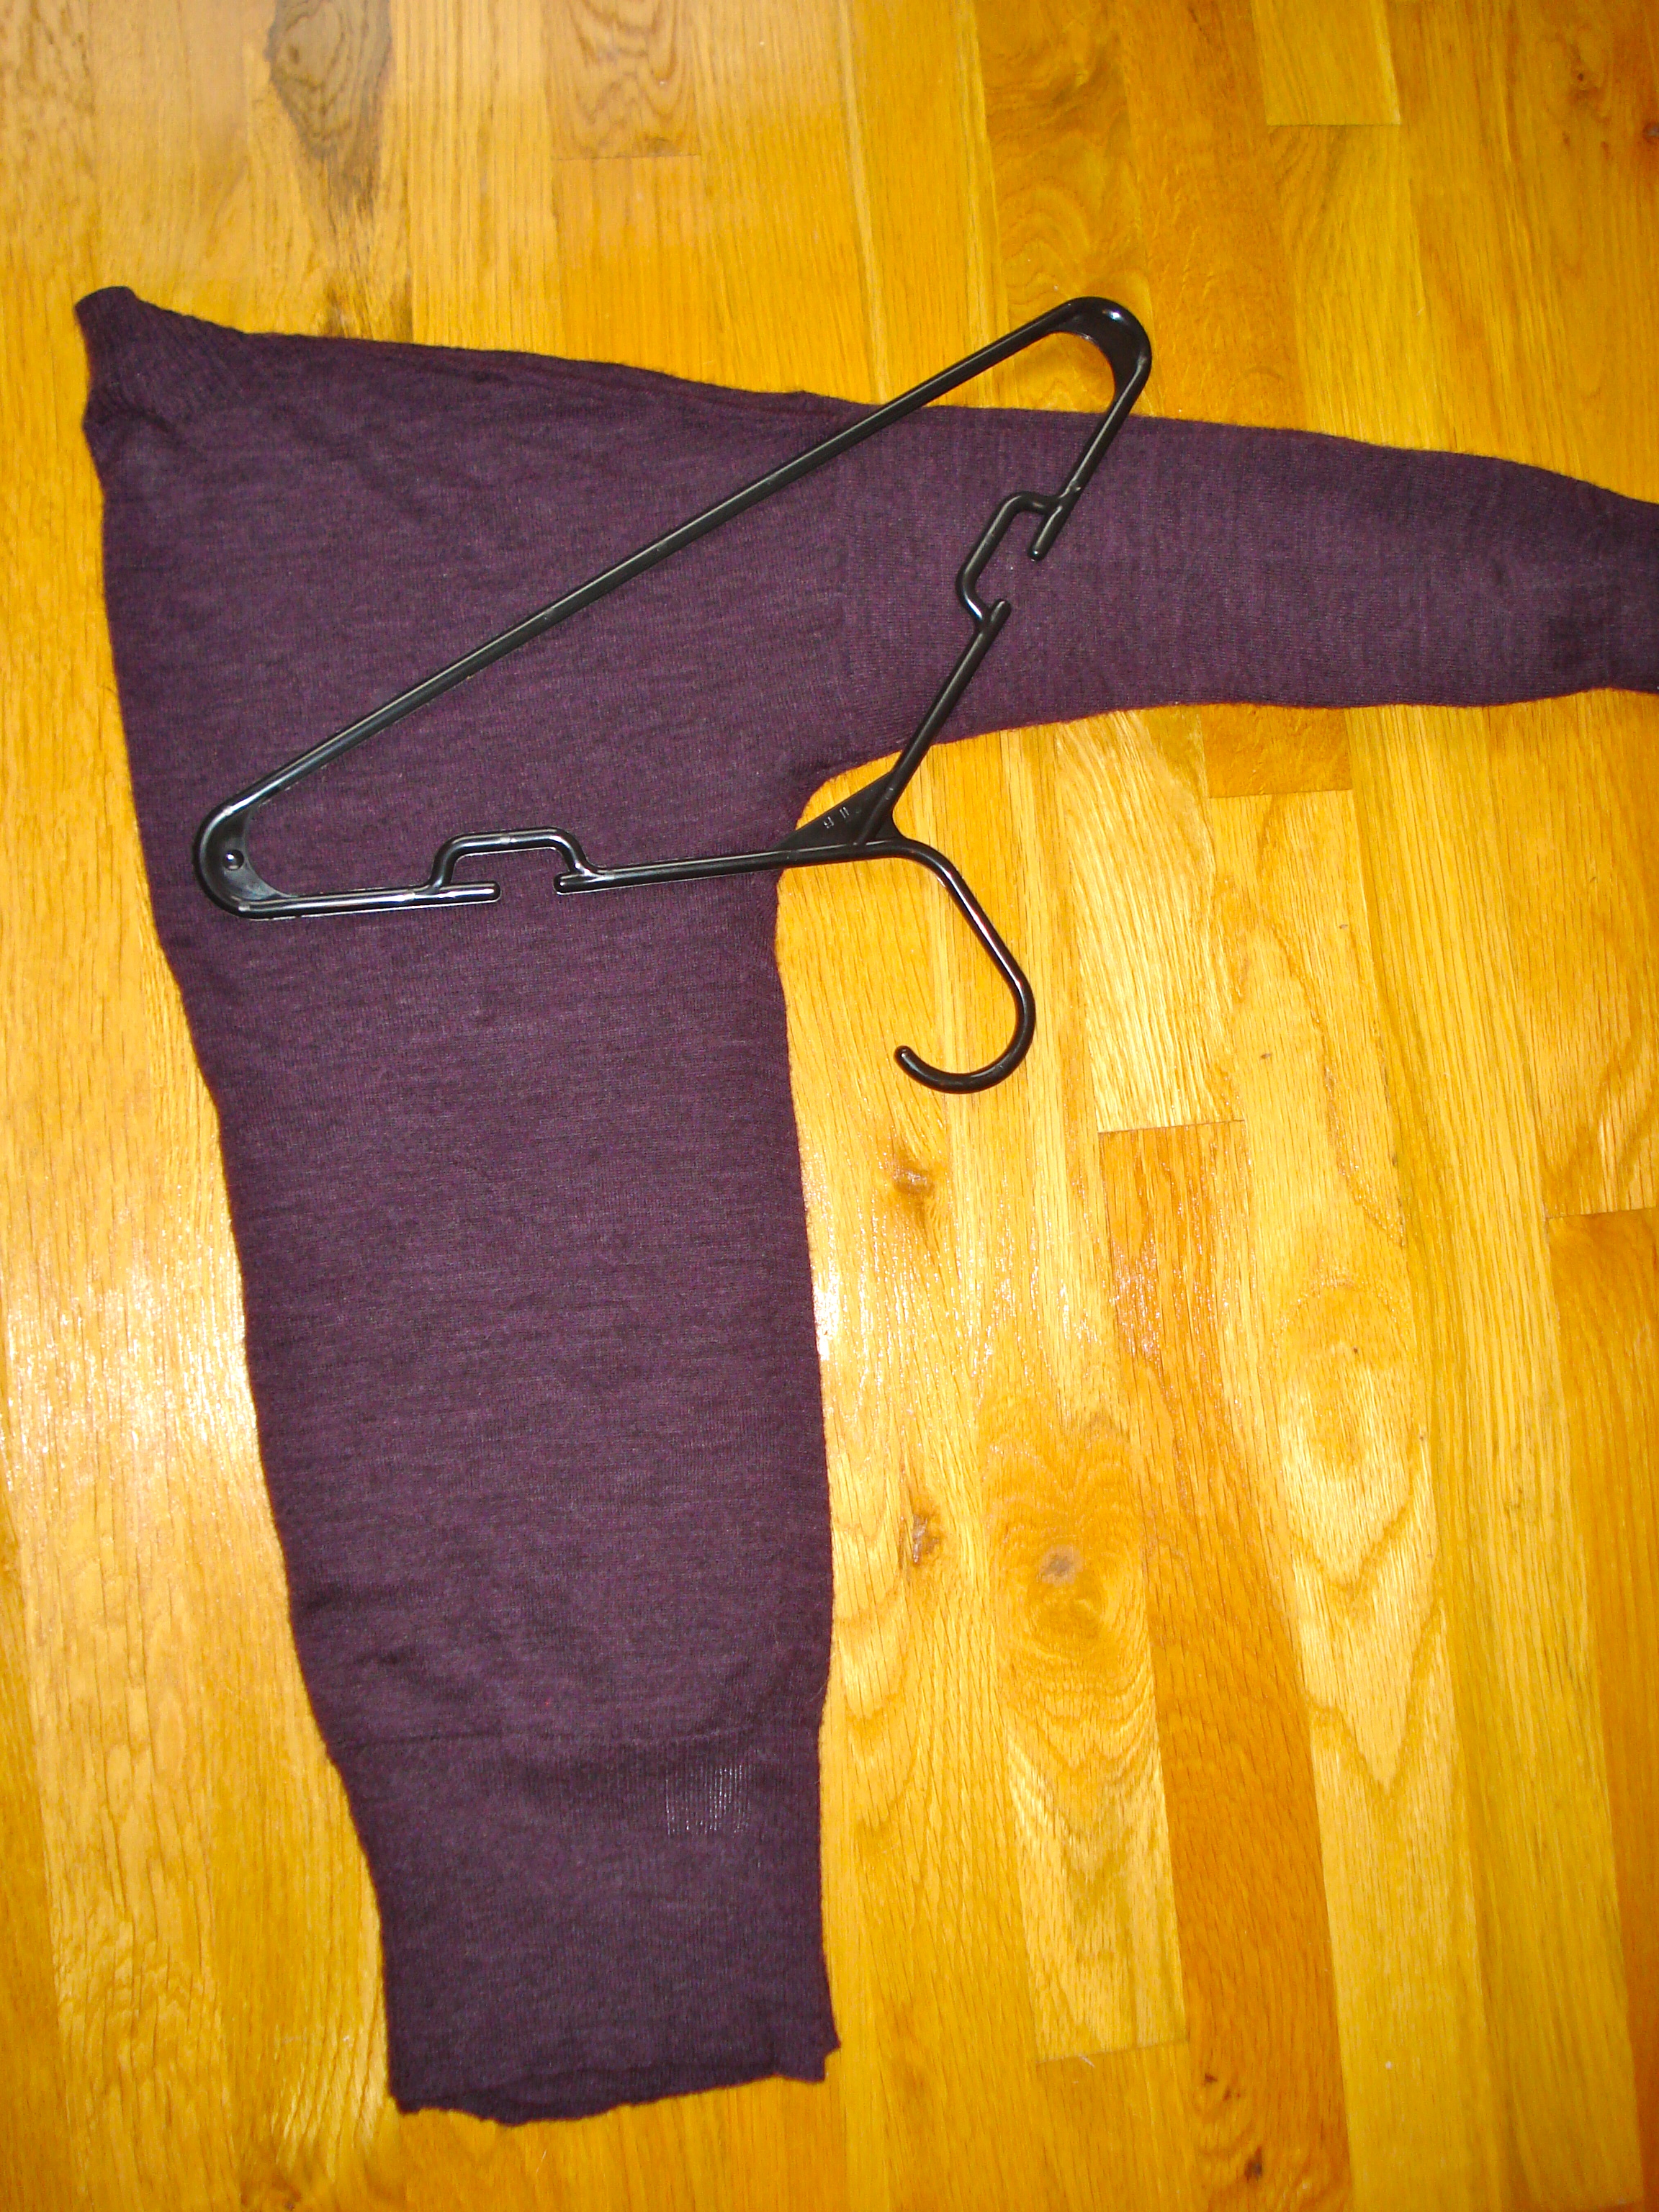 How To Hang A Sweater Ihavetriedit